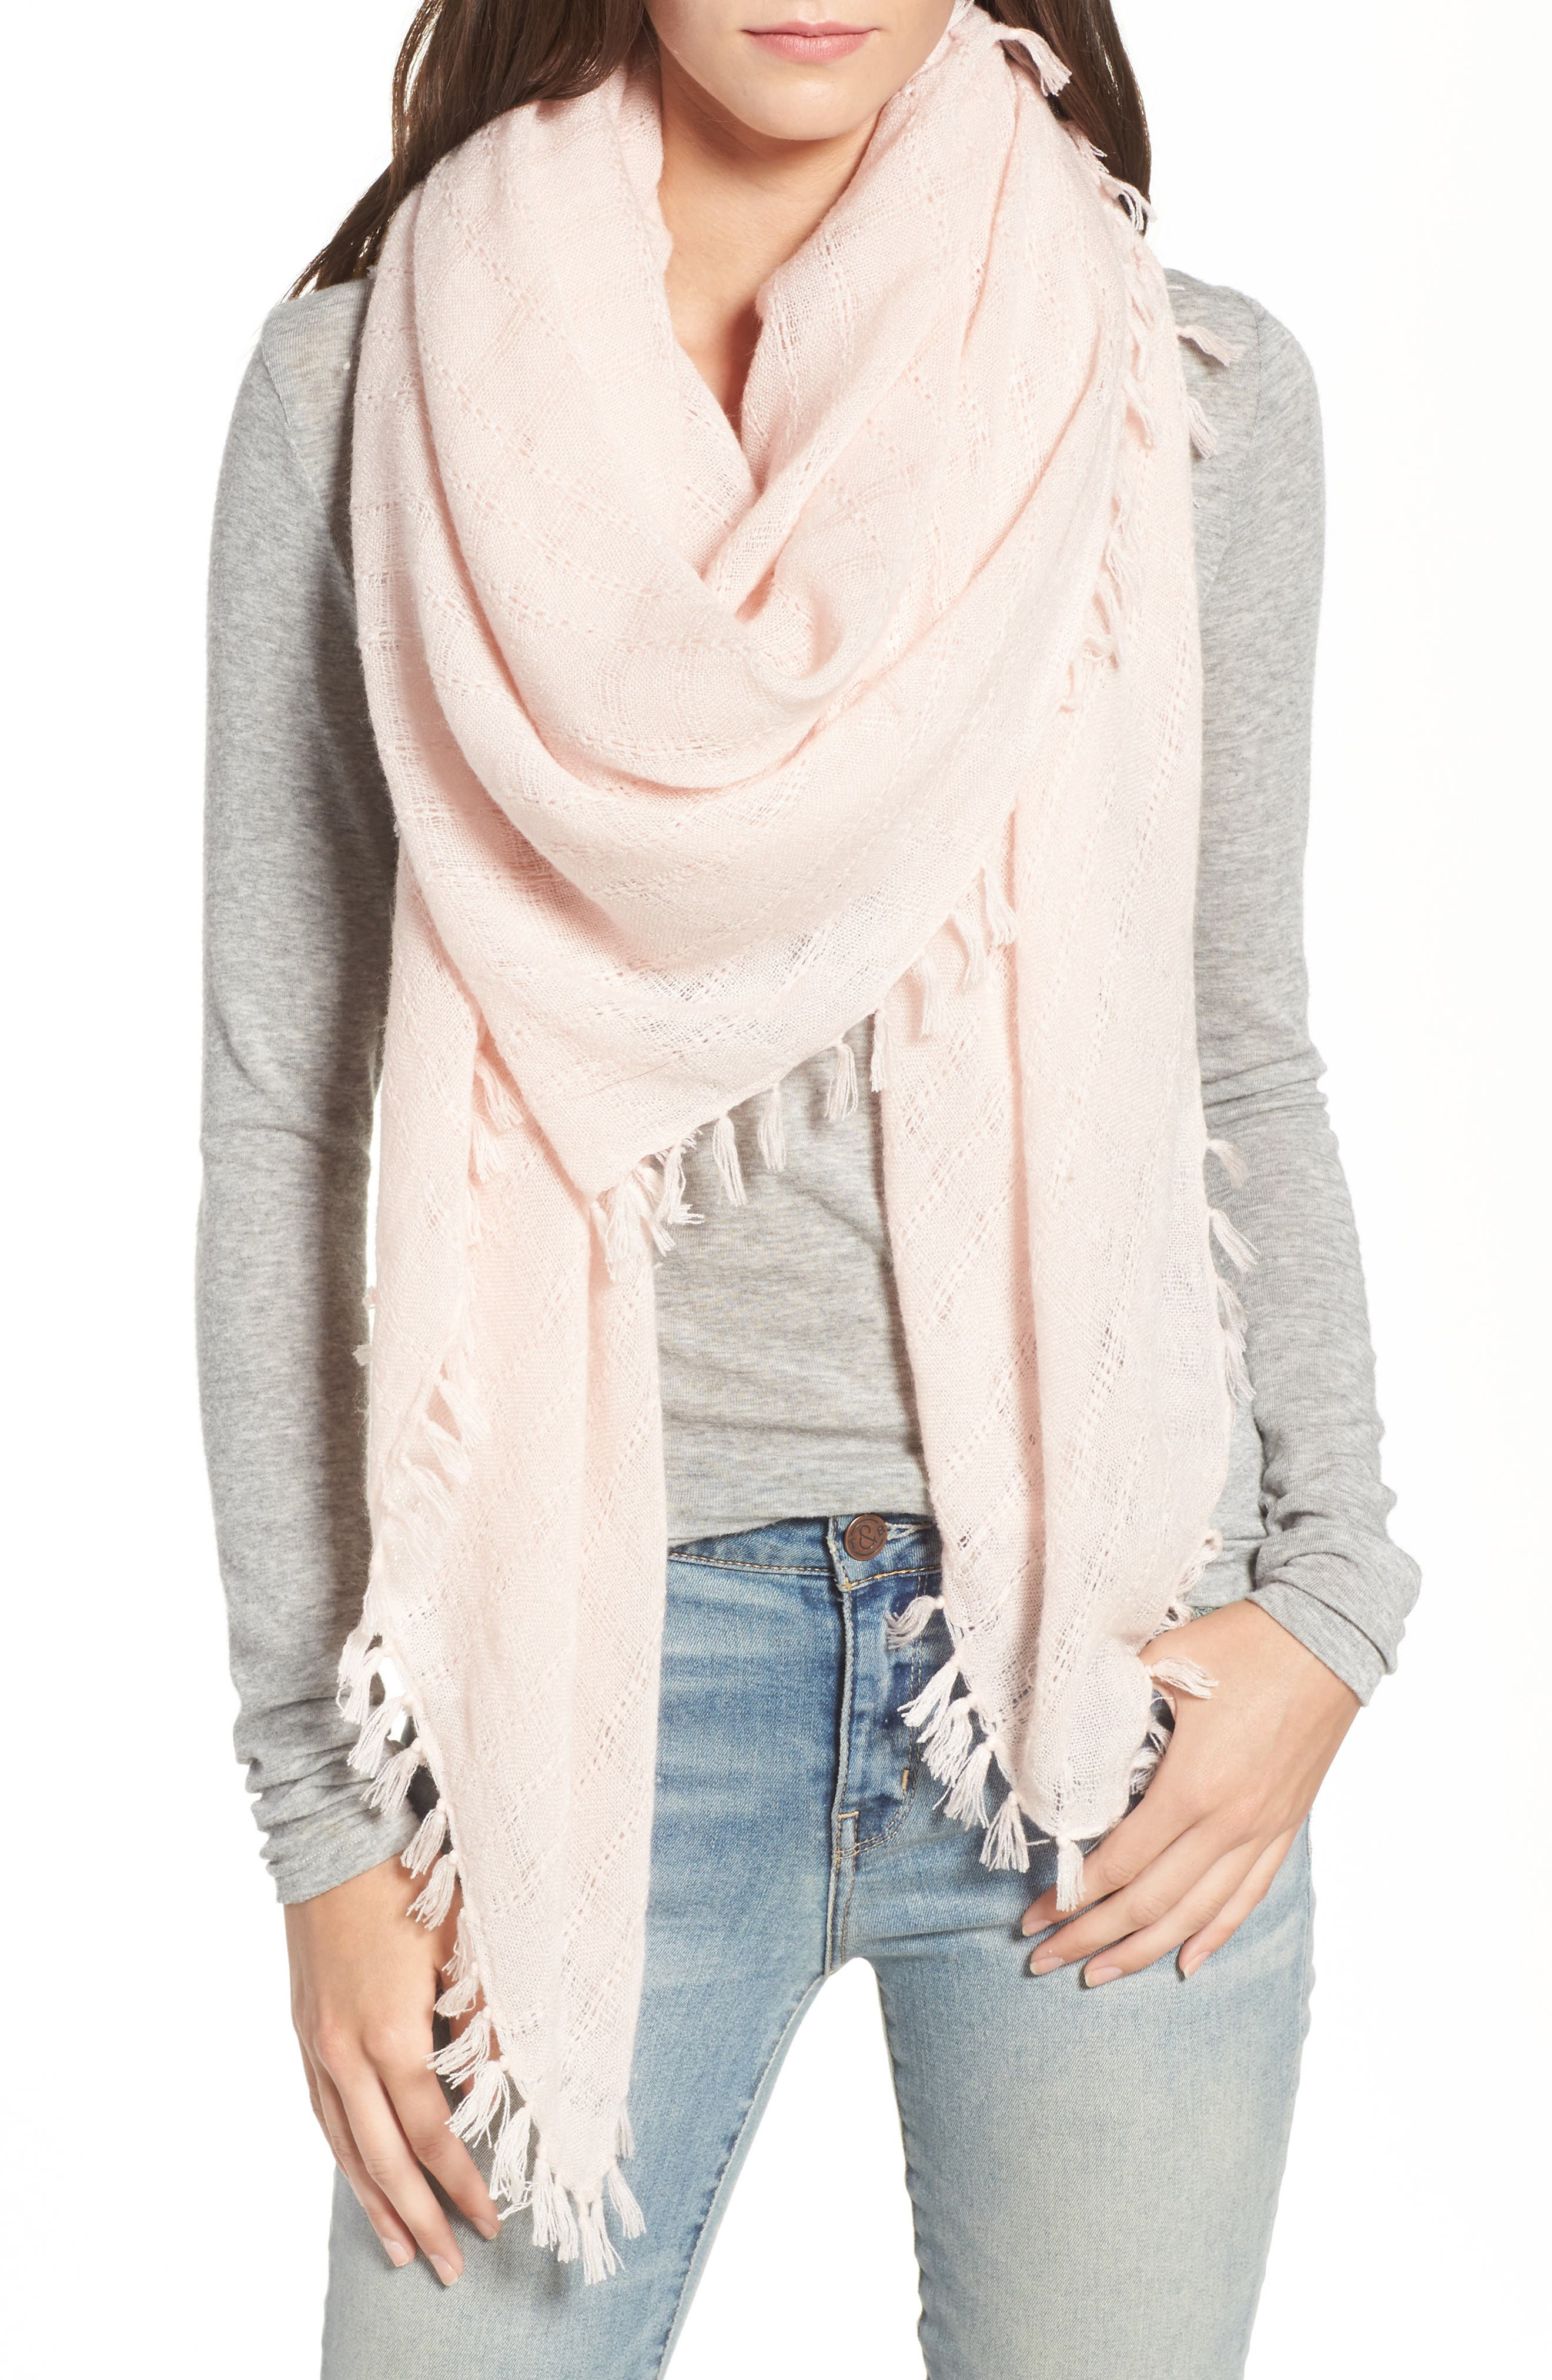 Treasure & Bond Knotted Tassel Scarf